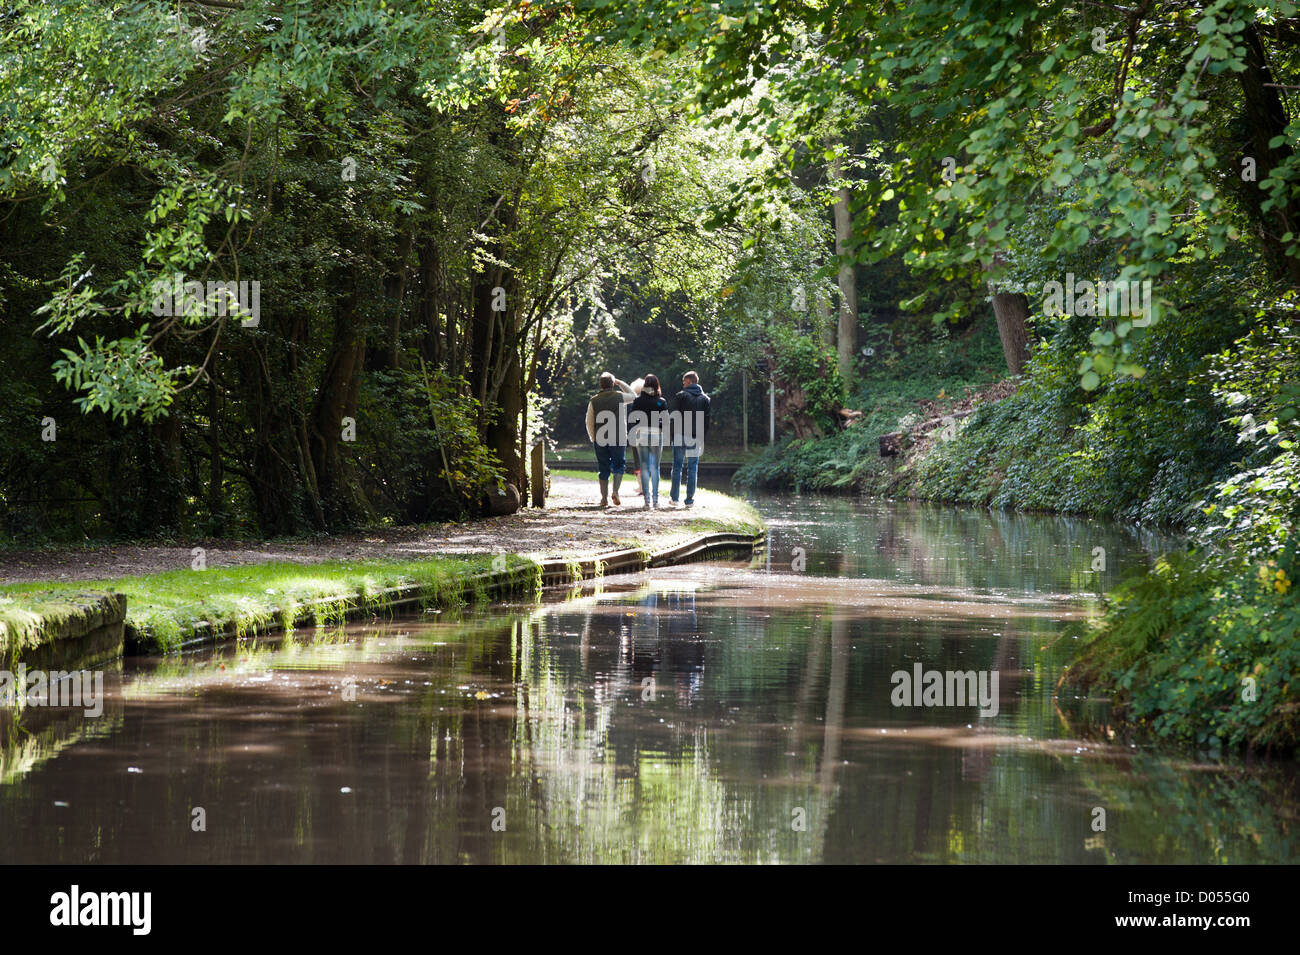 people walking next to a canal with sunlight through the trees - Stock Image